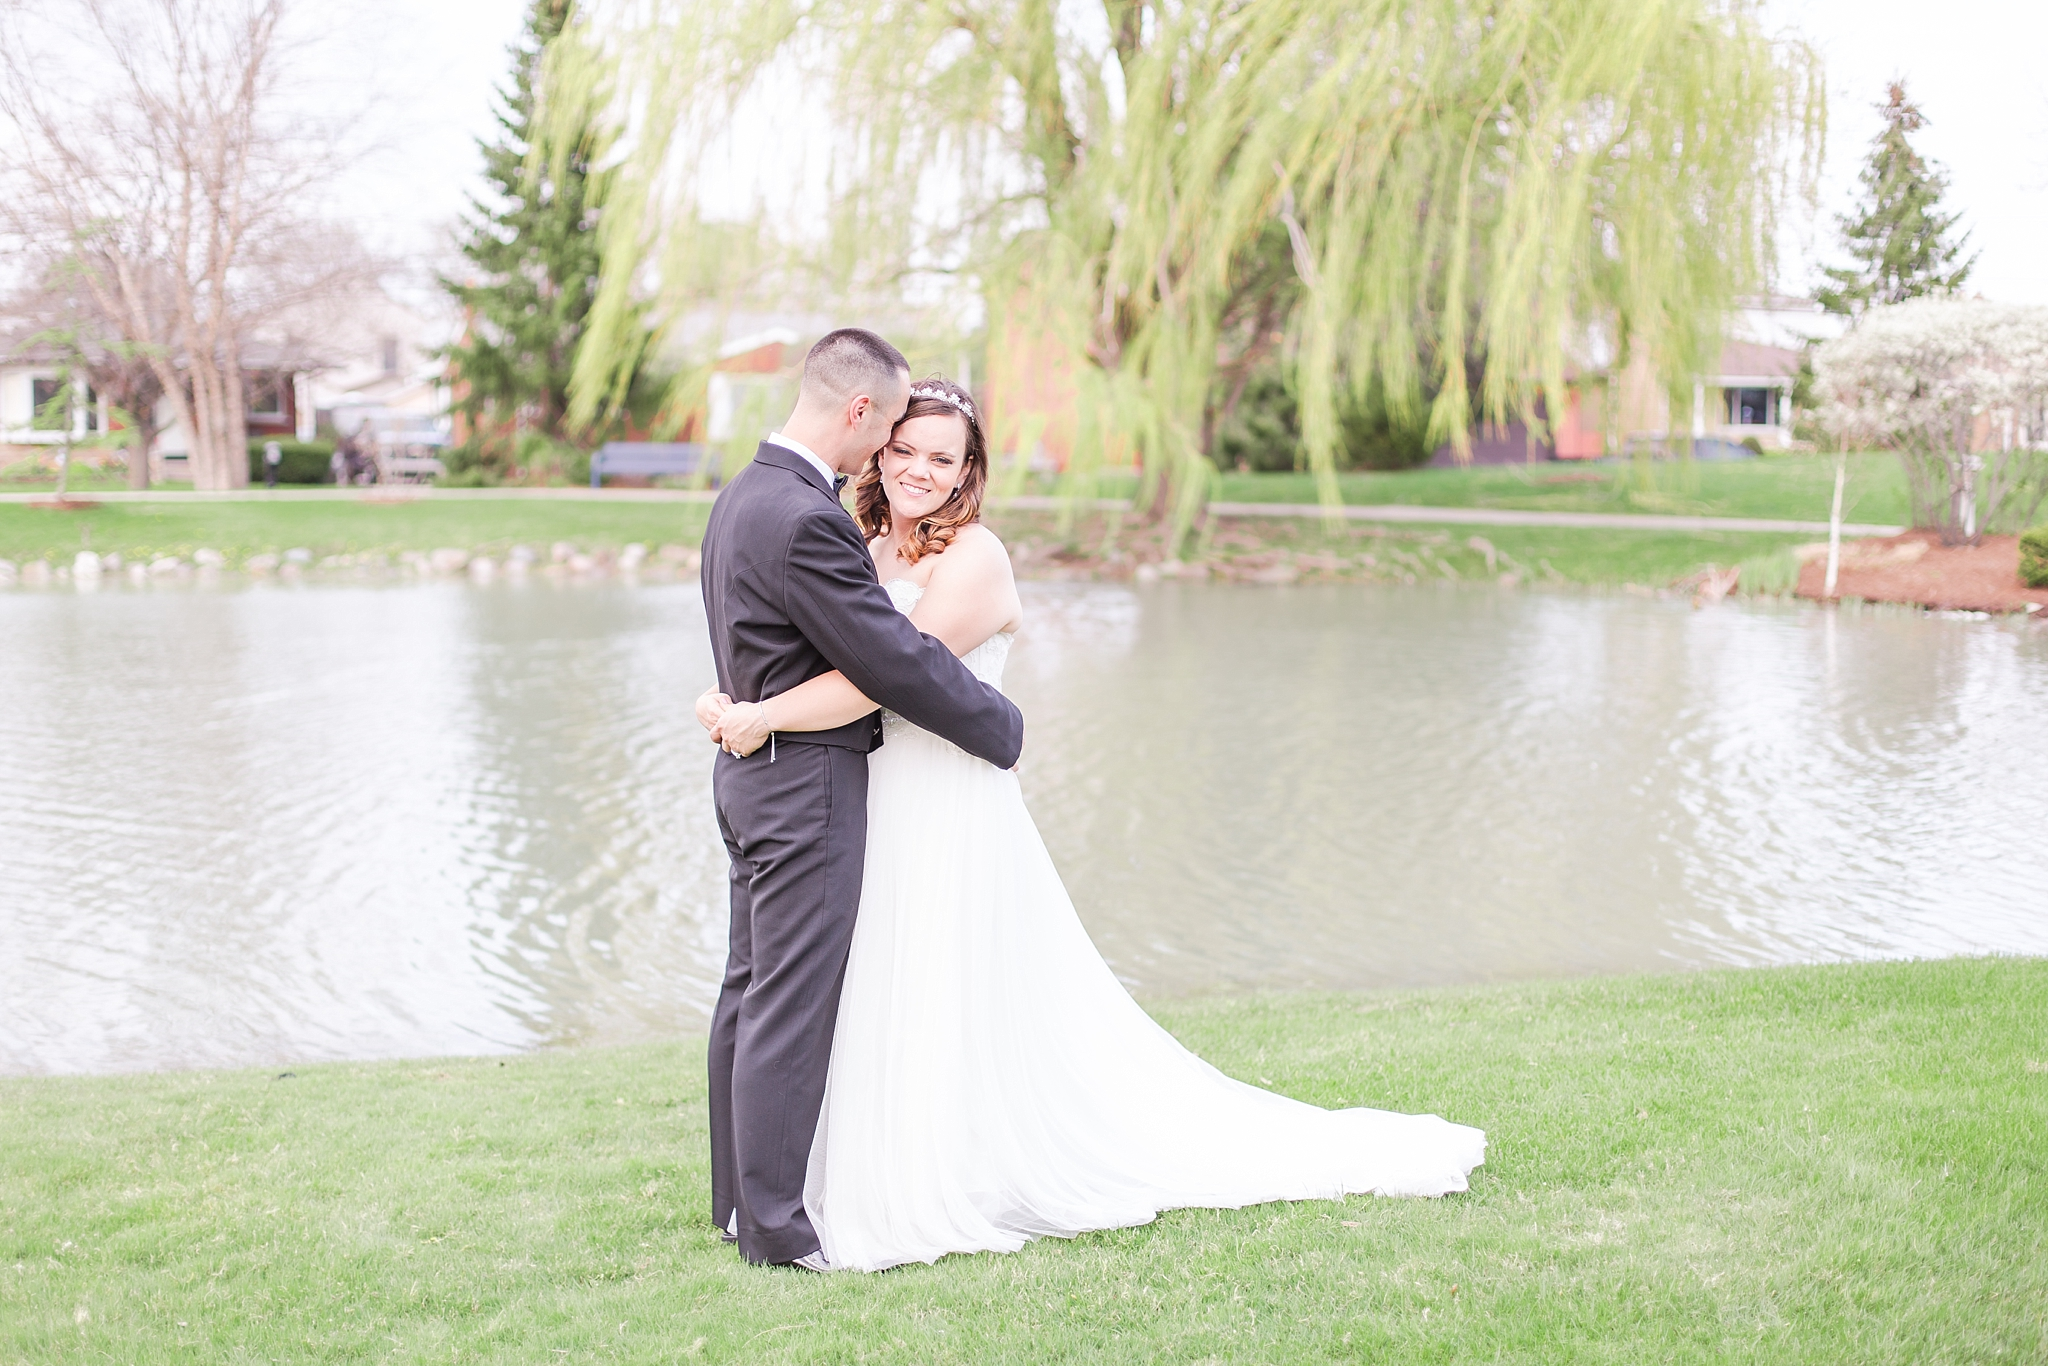 romantic-artful-candid-wedding-photos-in-st-clair-shores-at-the-white-house-wedding-chapel-by-courtney-carolyn-photography_0057.jpg